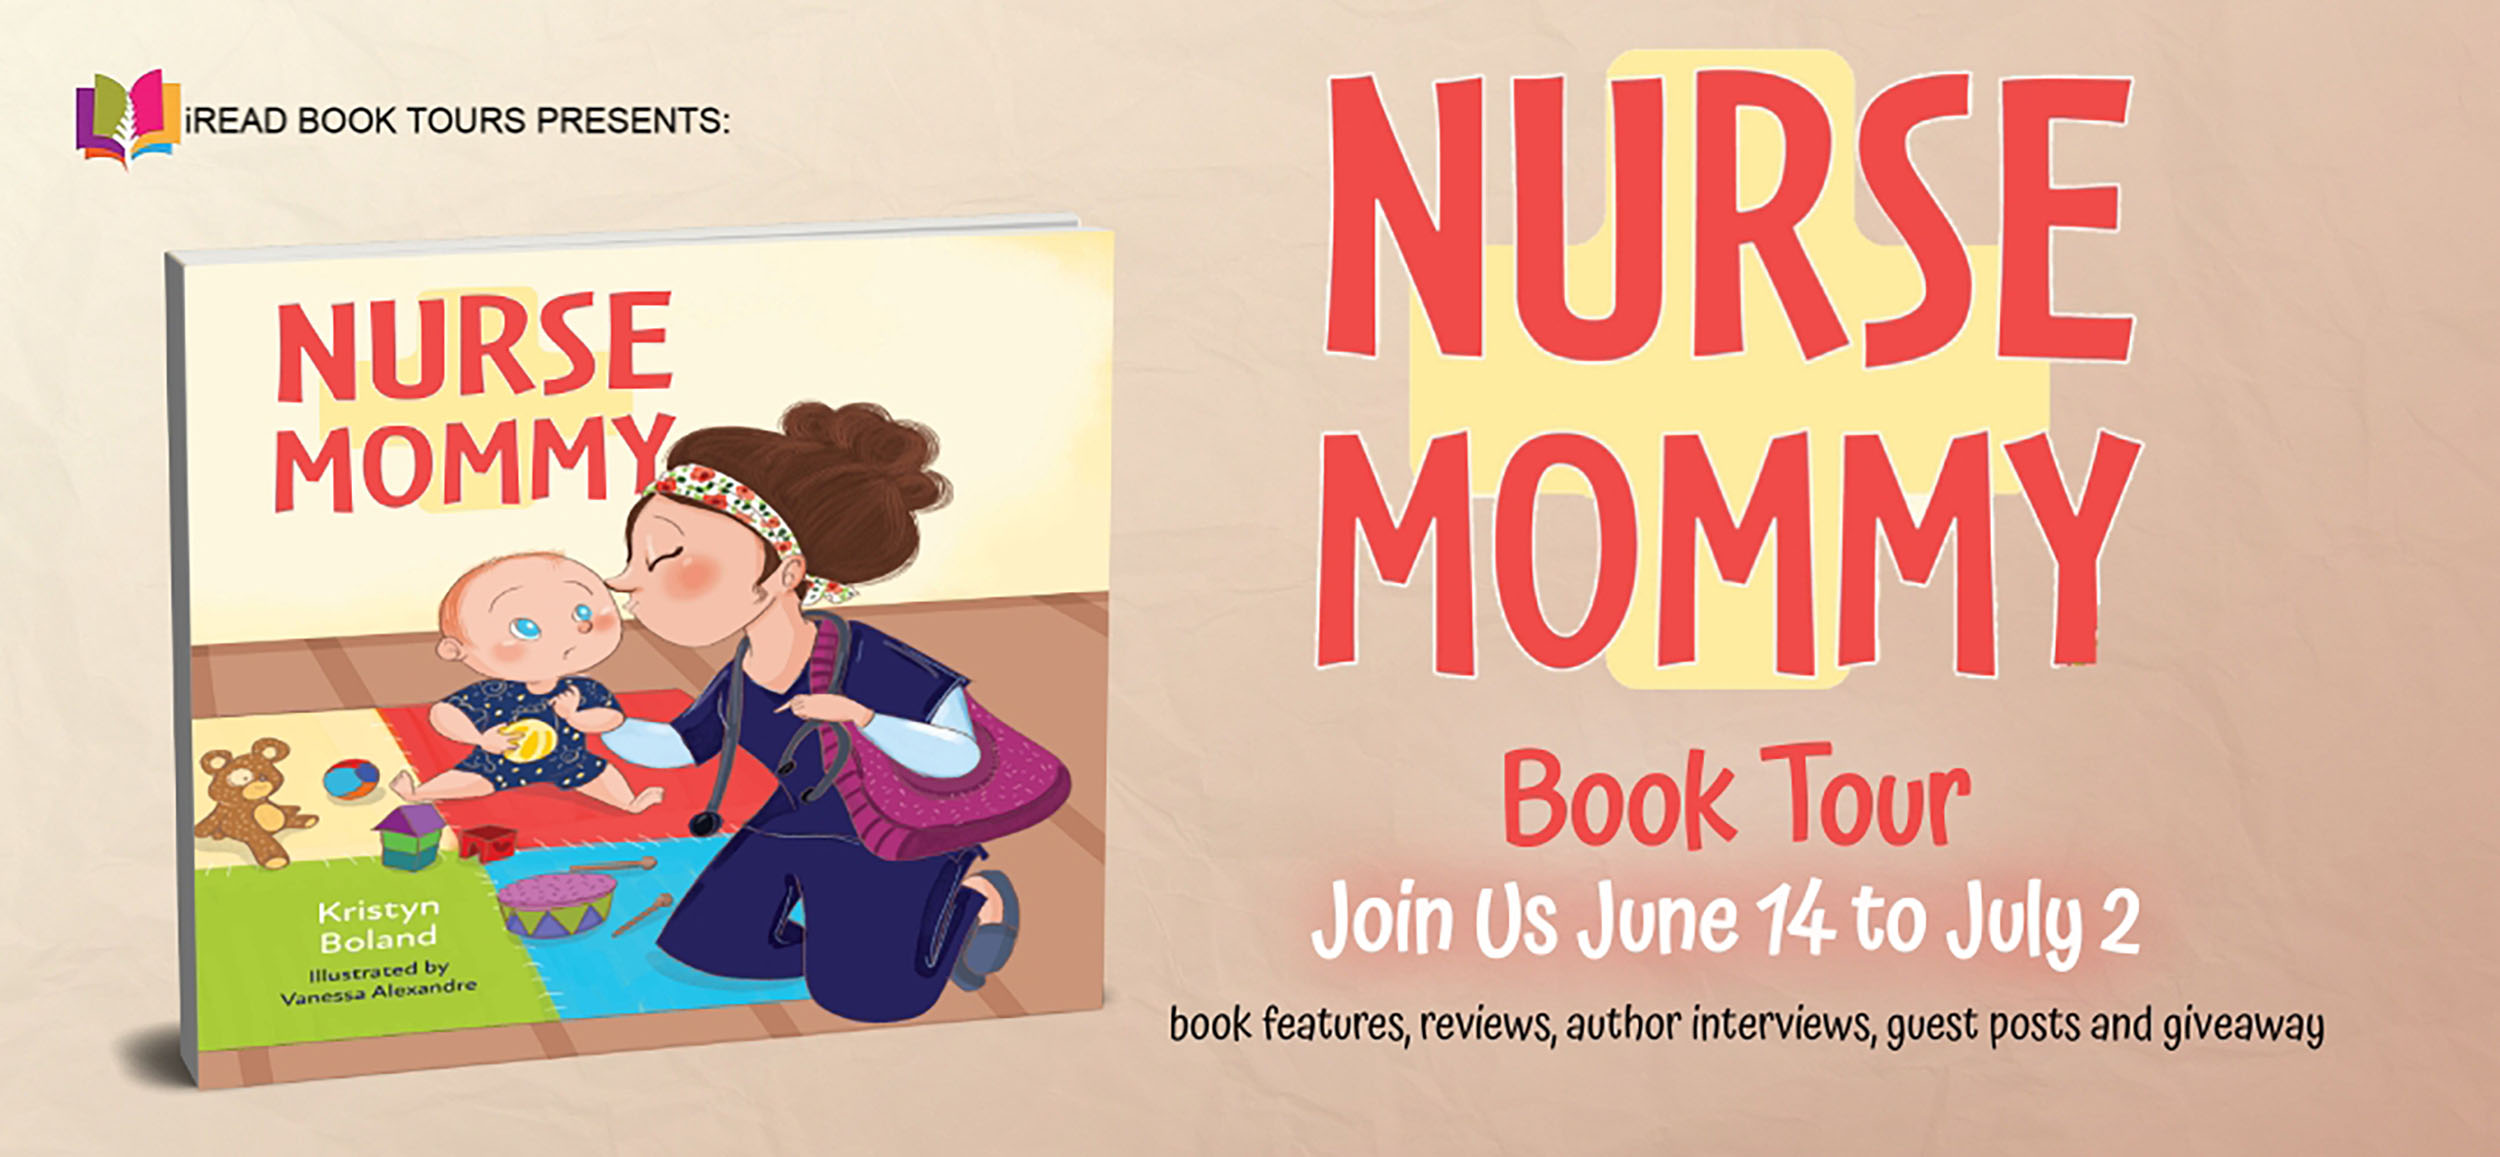 Author Guest Post with Kristyn Boland & 5 Star Review of Nurse Mommy